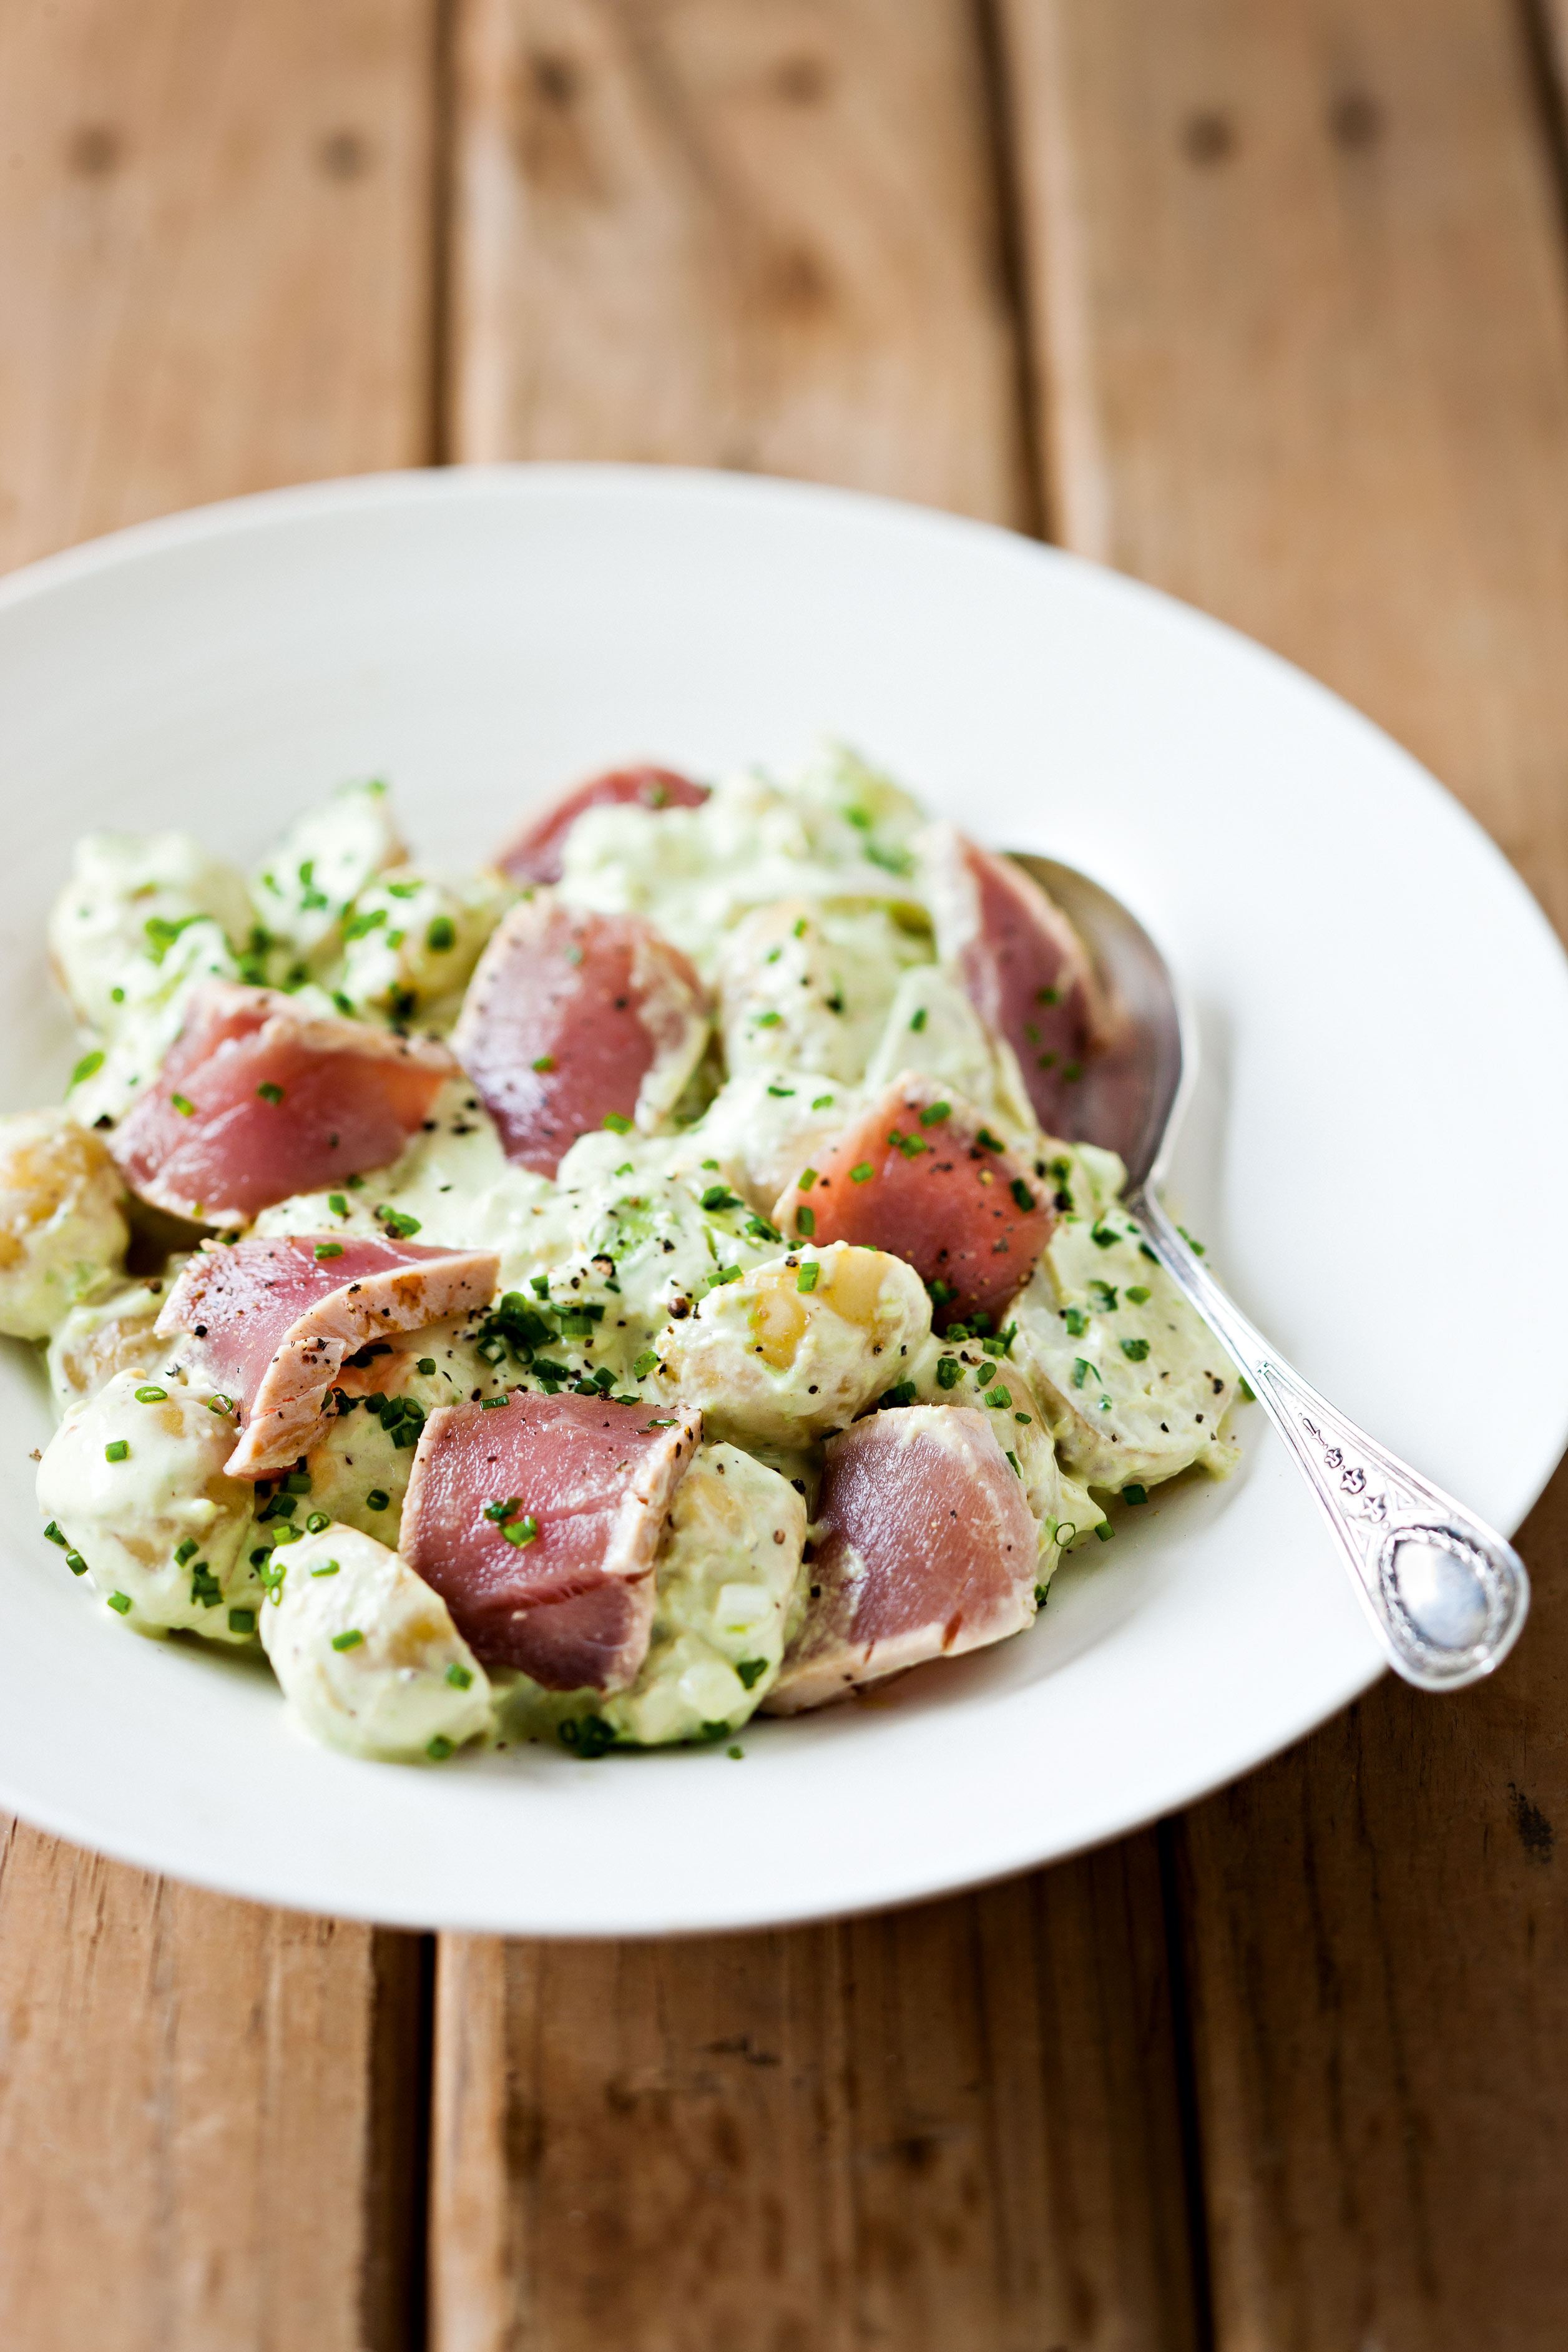 New-Potato Salad with Avocado, Wasabi and Seared Tuna